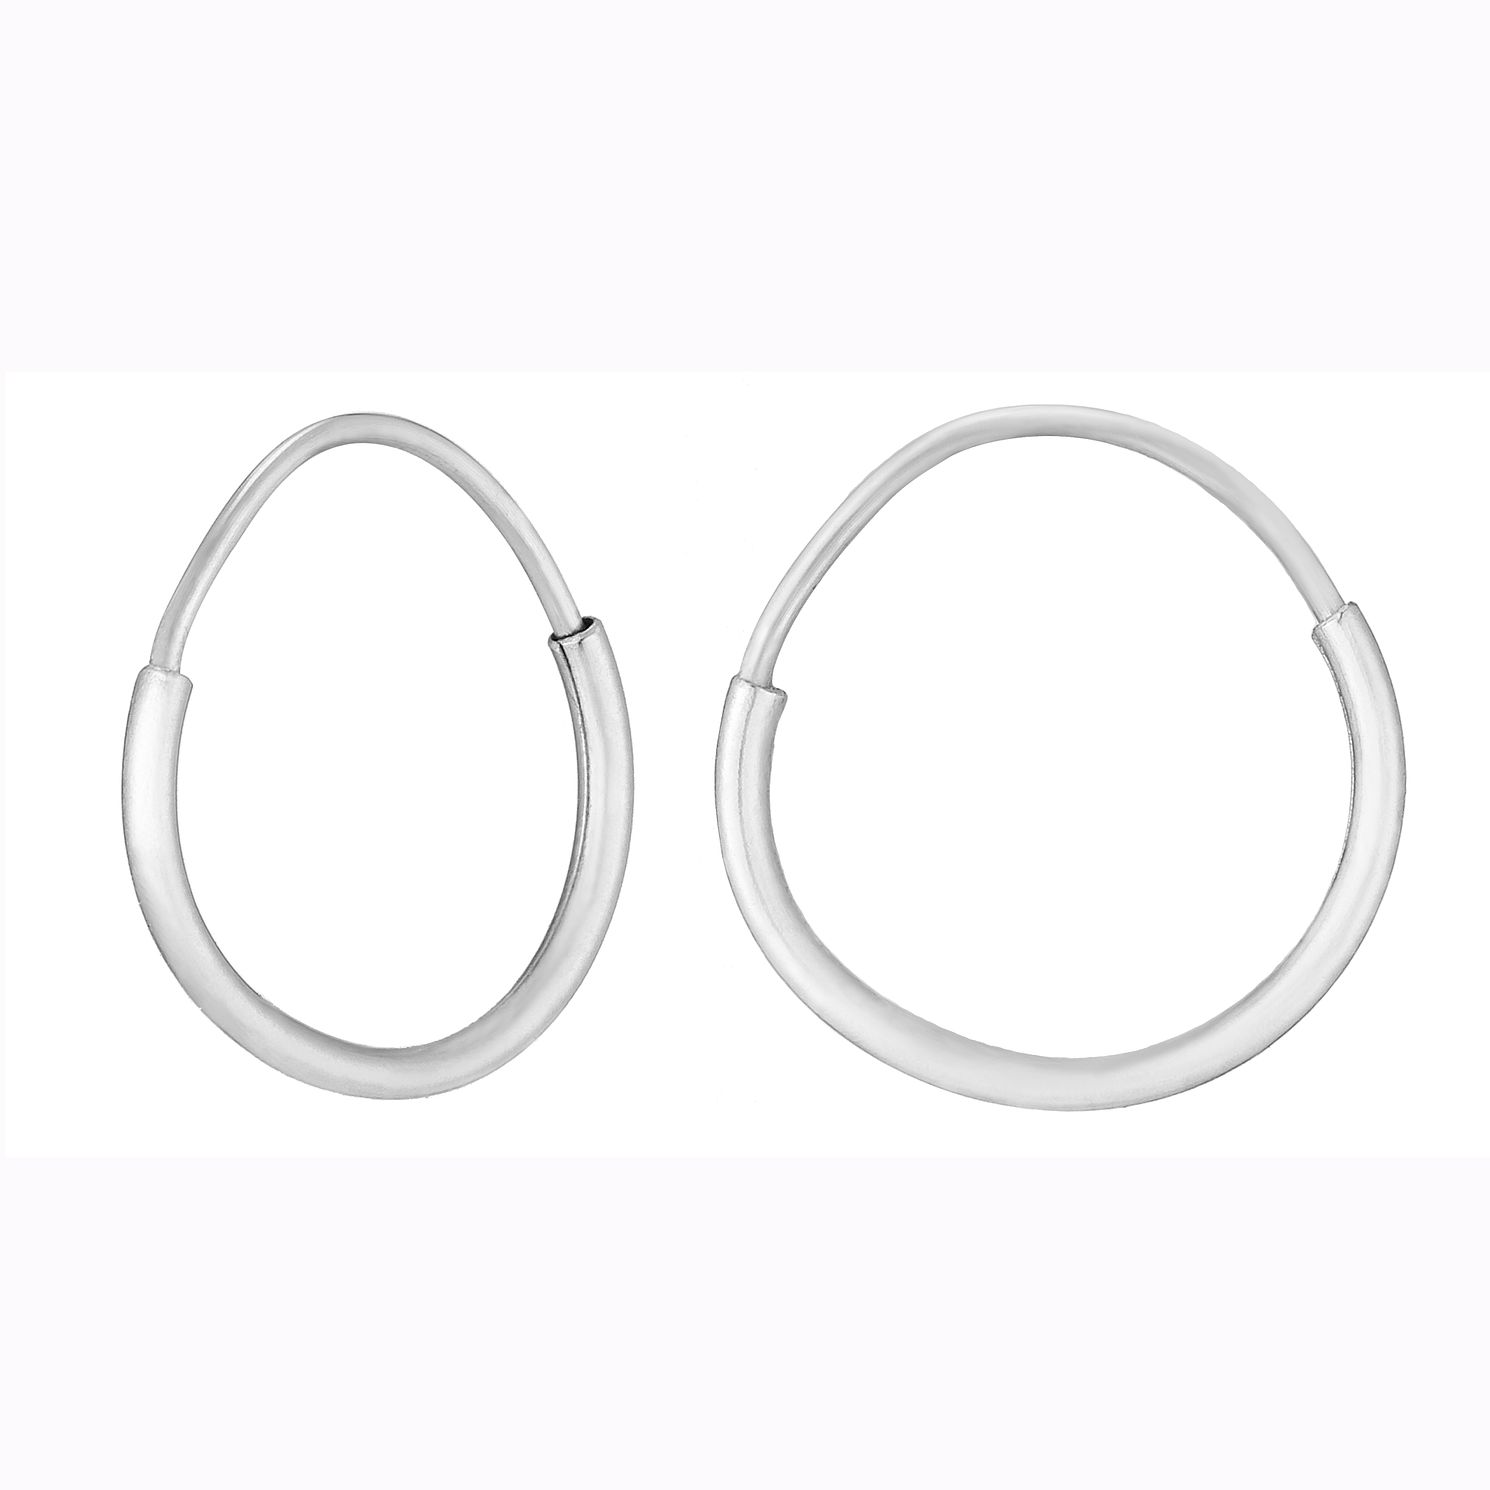 9ct White Gold 10mm Sleeper Earrings - Product number 9242694